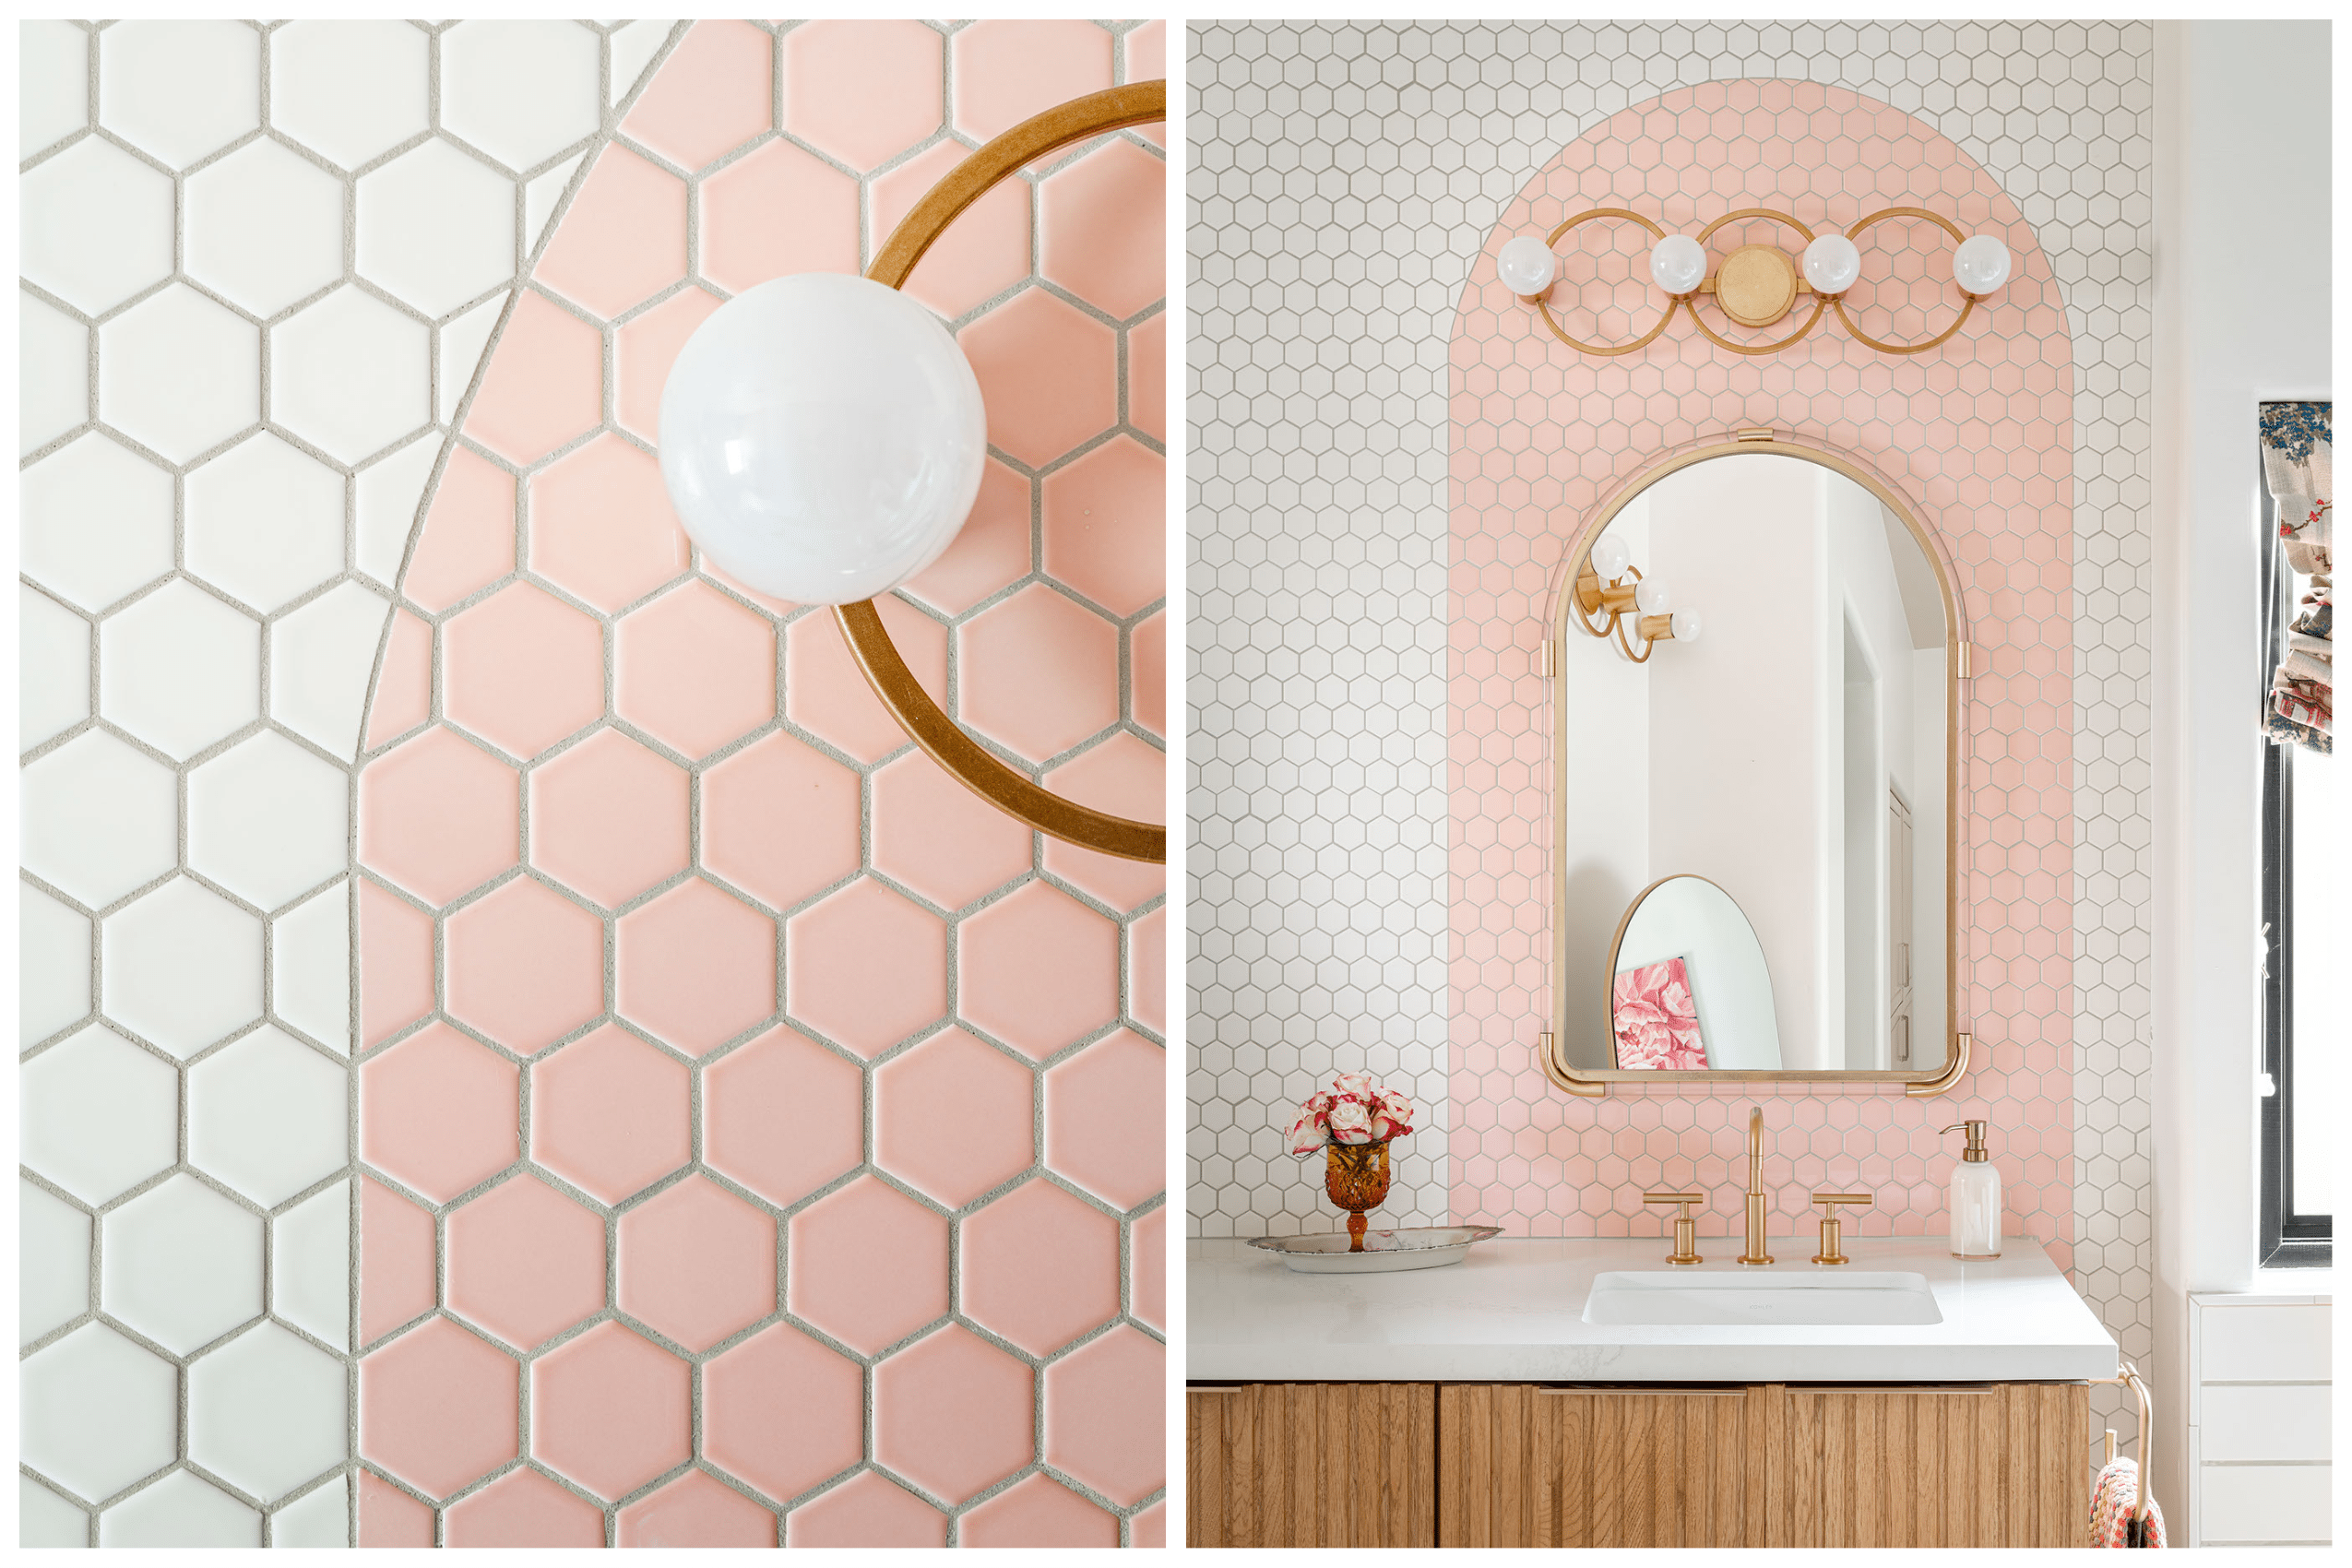 white and pink tiled bathroom with tiled arched details